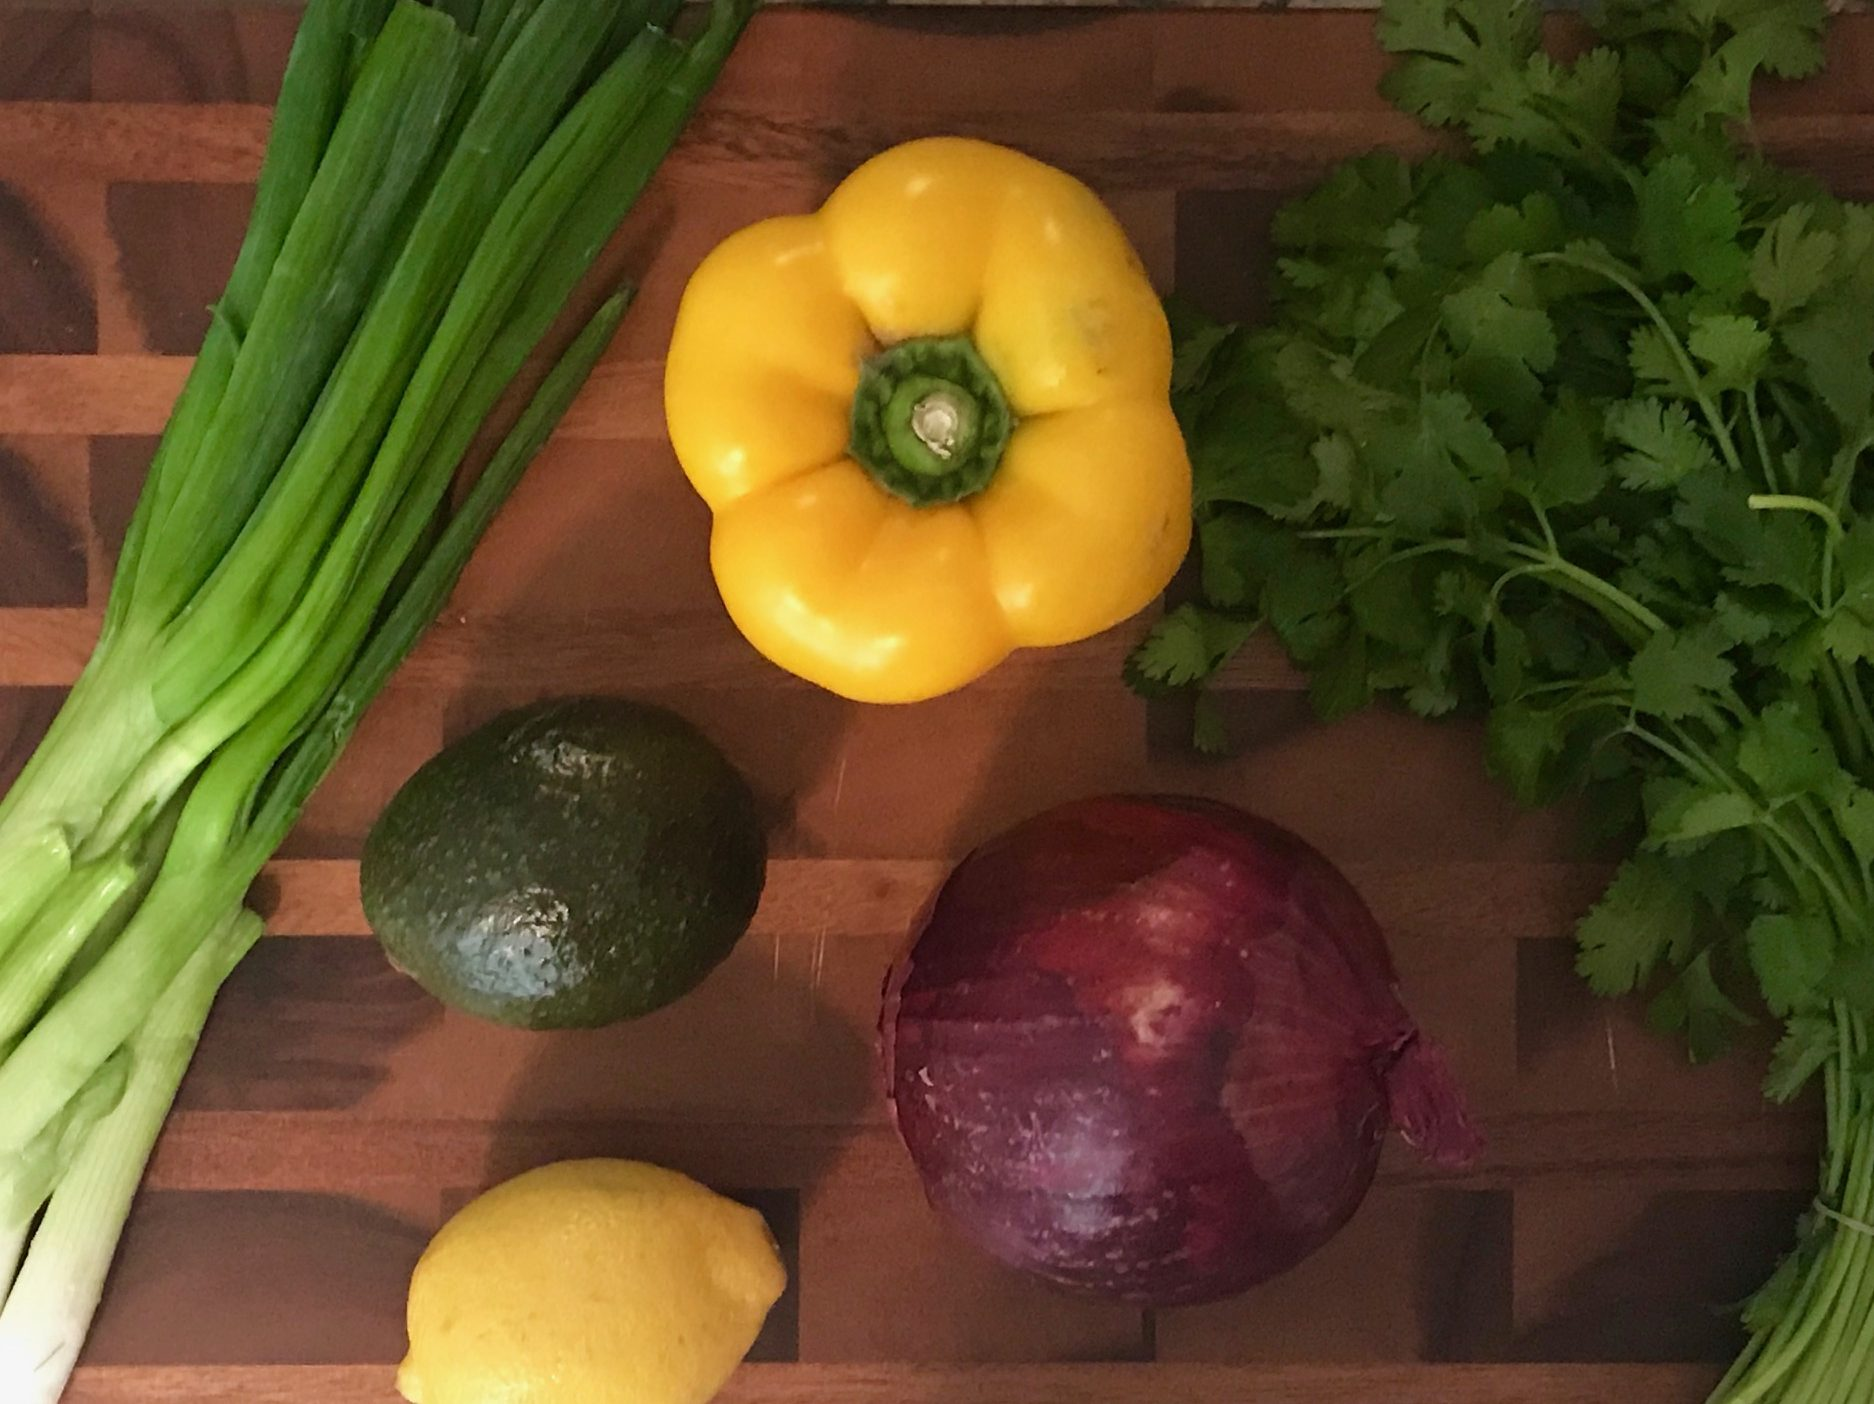 pepper, parsley, avocado, red onion, lemon and spring onions on a cutting board